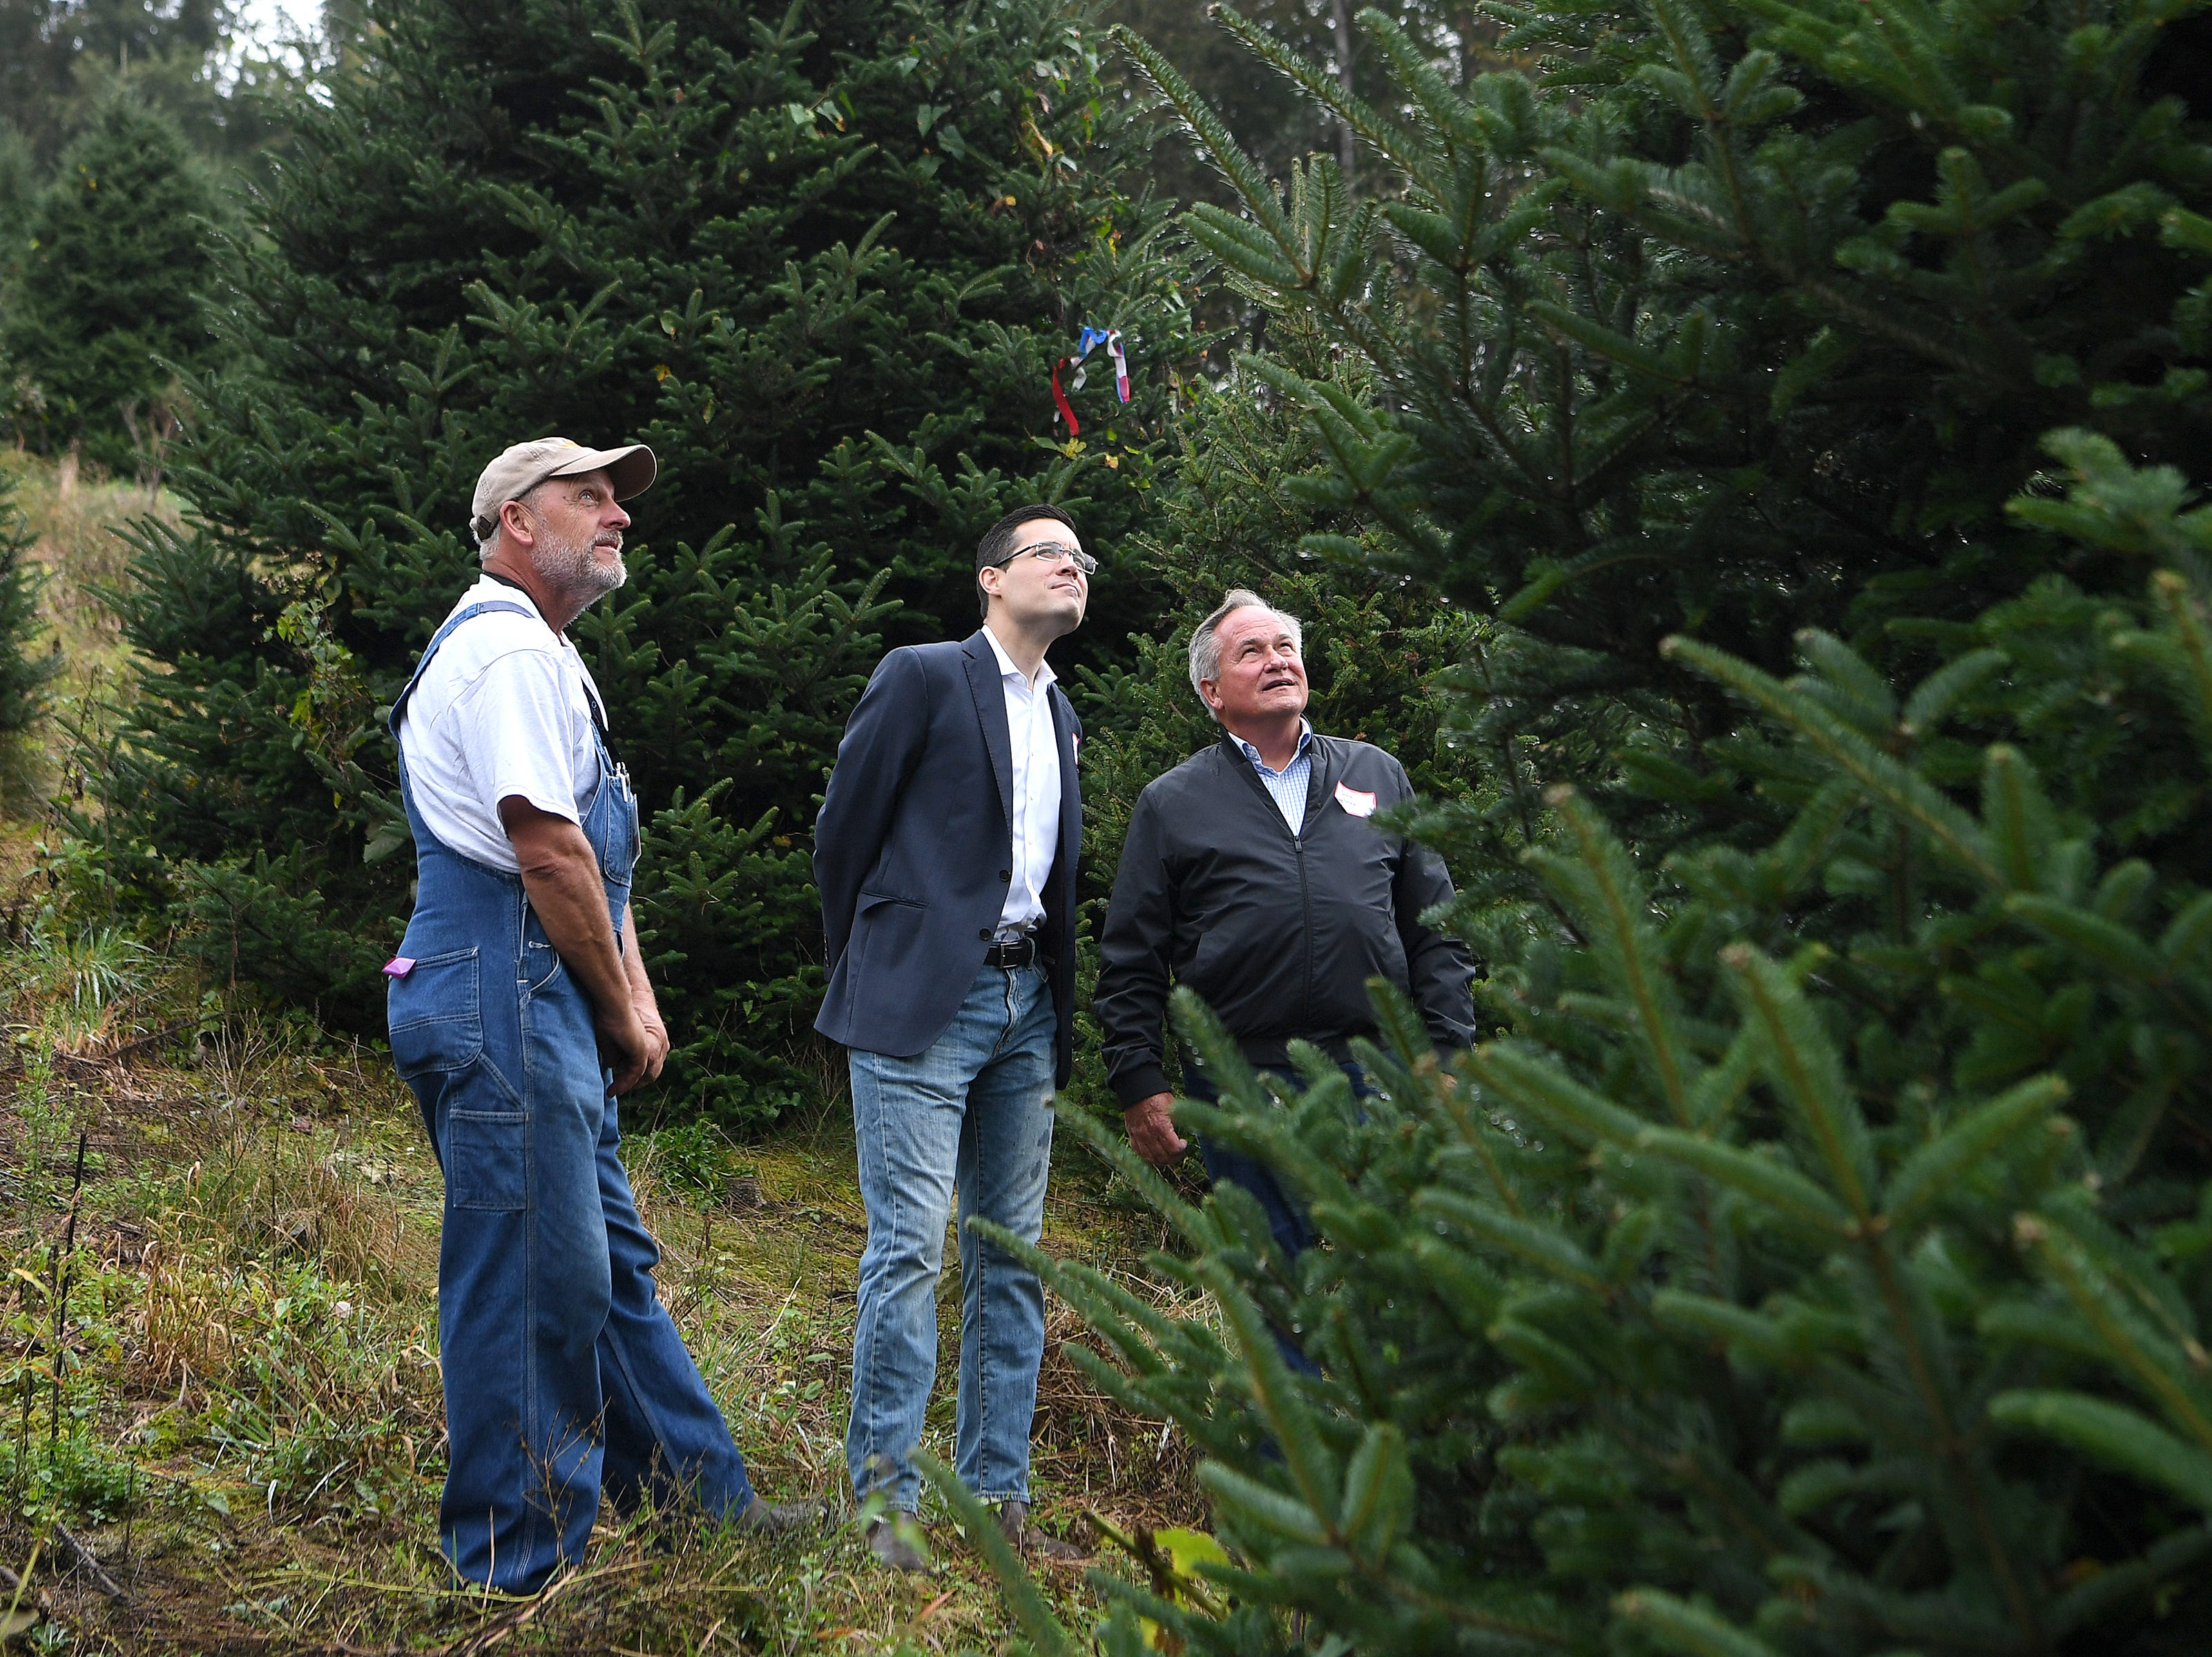 White House officials chief usher Timothy Harleth and superintendent of grounds Dale Haney pick out one of Mountain Top Fraser Fir Christmas tree farmer Larry Smith's trees to display in the Blue Room of the White House during an event at his Newland farm on Sept. 24, 2018.